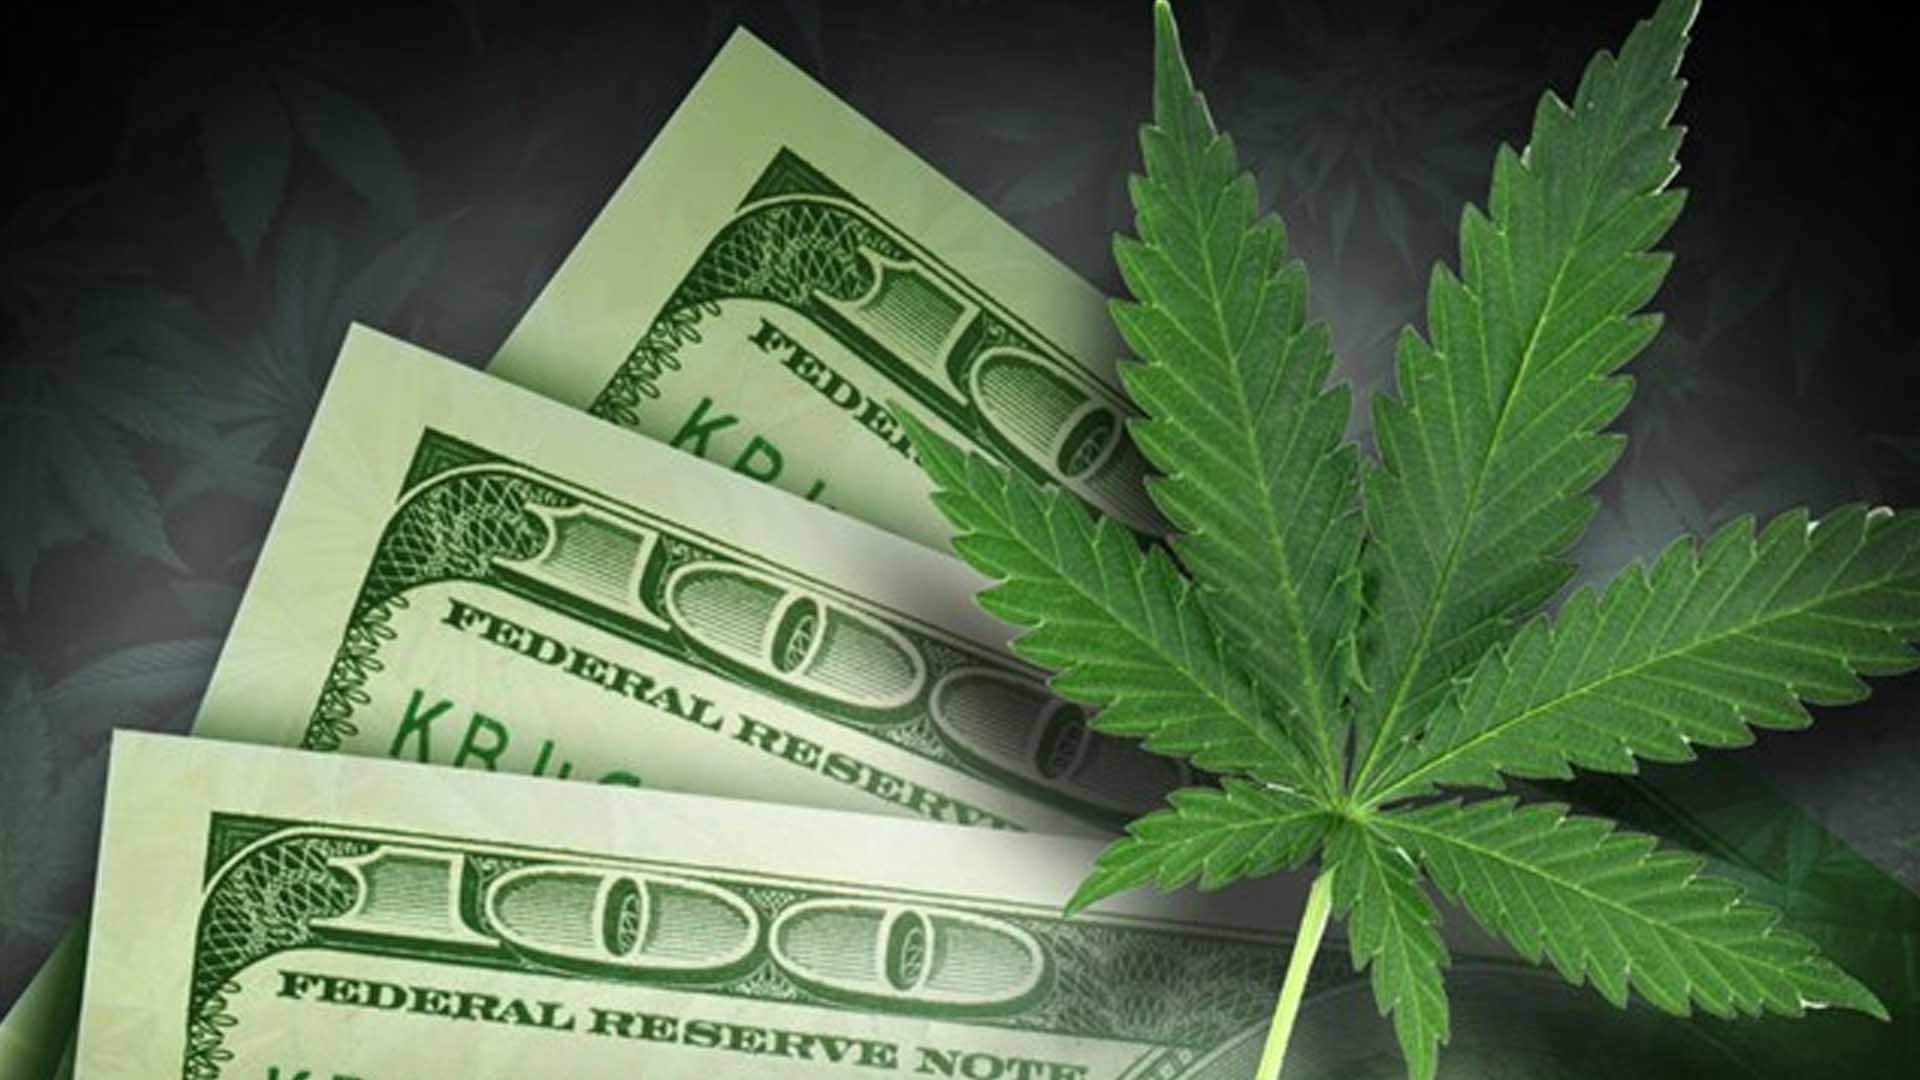 Marijuana tax revenue should stay local, county commissioner says